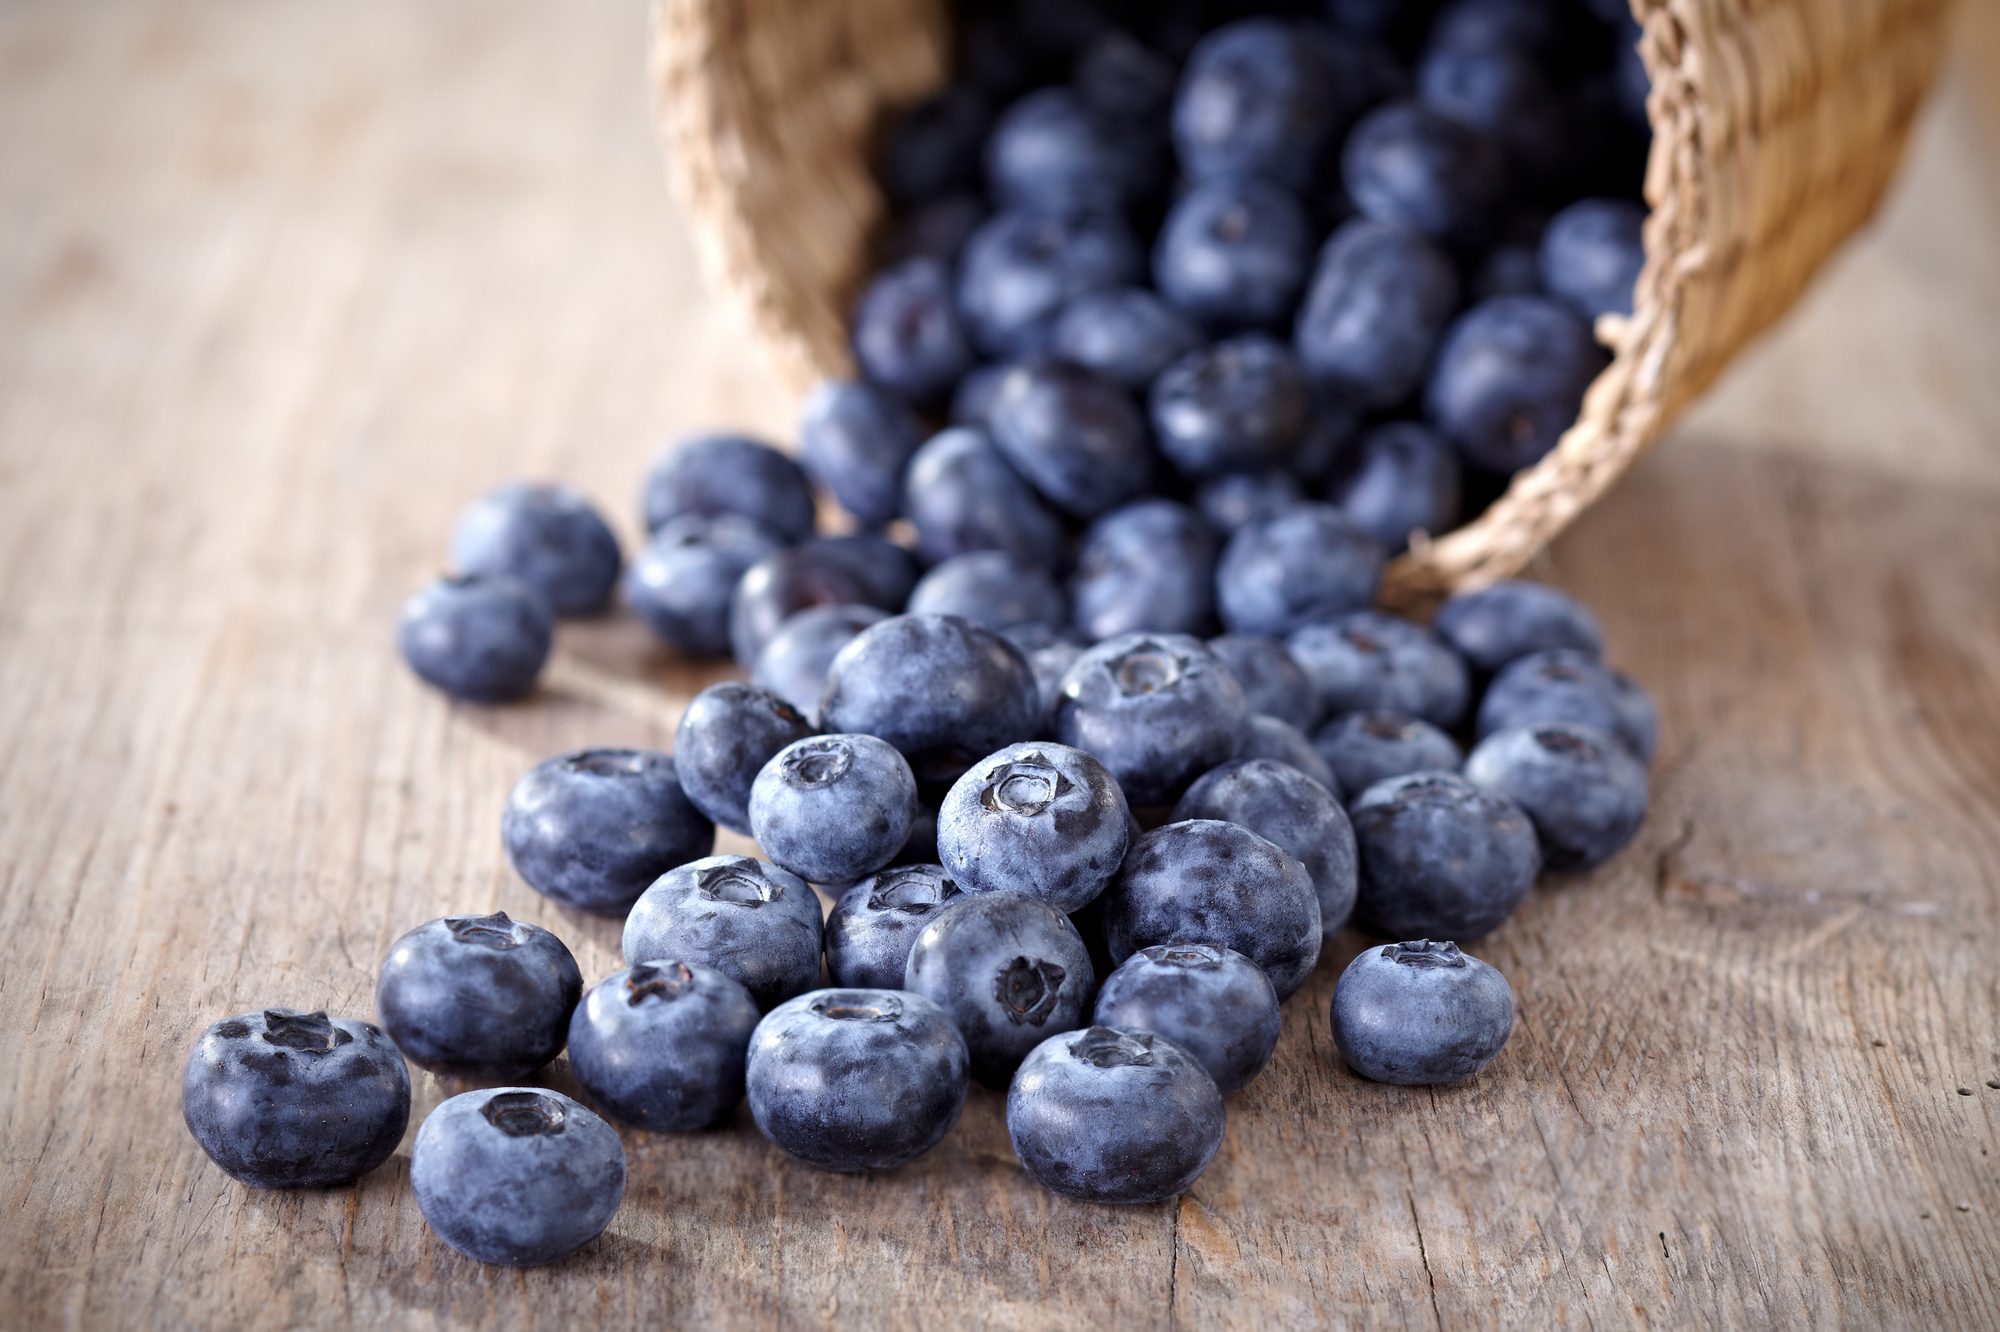 Blueberries - Do Antioxidants Impact Athletic Training?